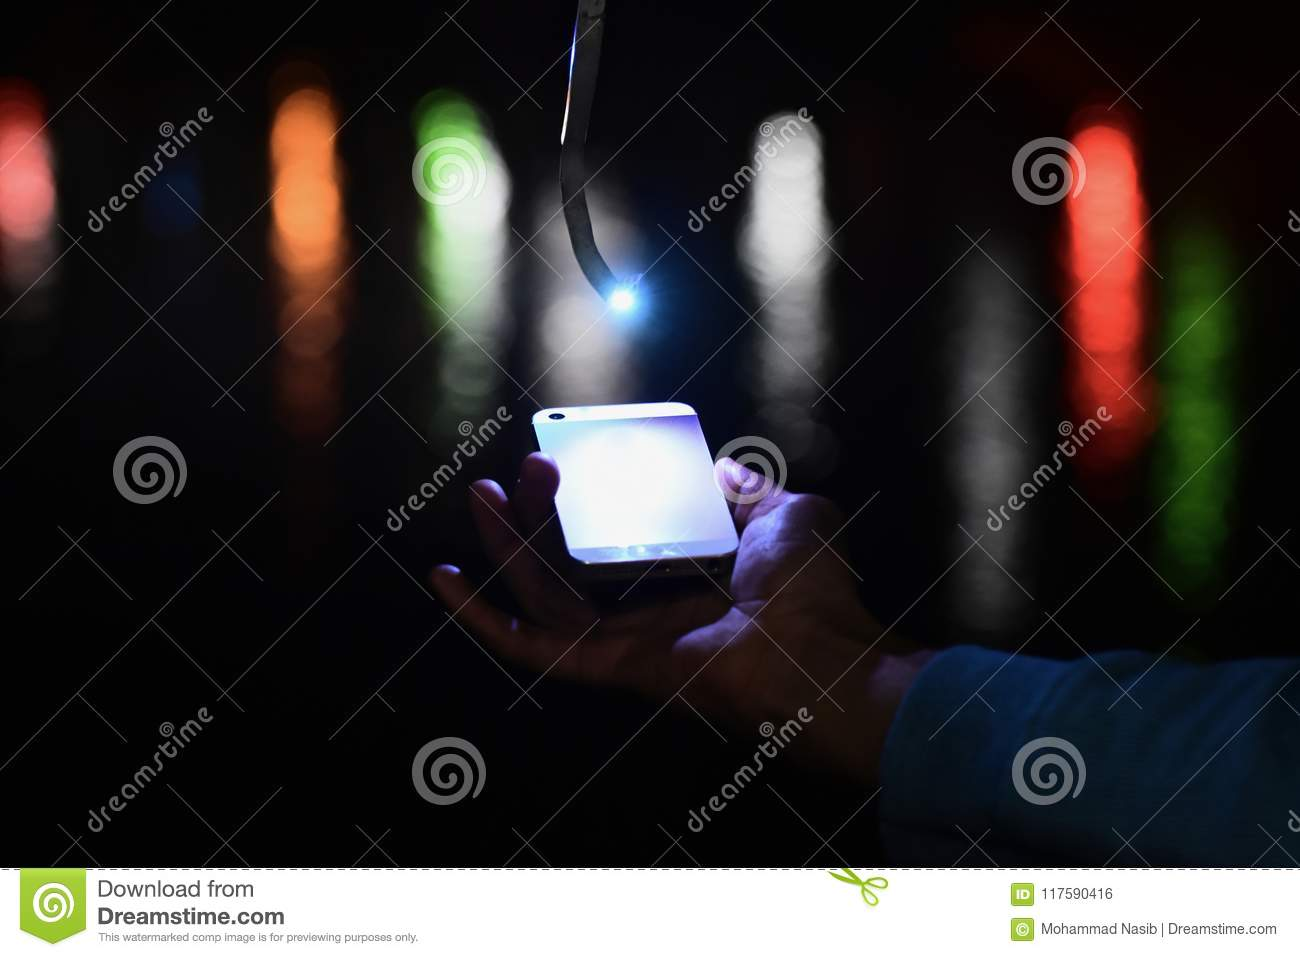 Download Man Holding An Smart Phone In Hand With Blurred Background Photograph Stock Photo - Image of blurred, photograph: 117590416